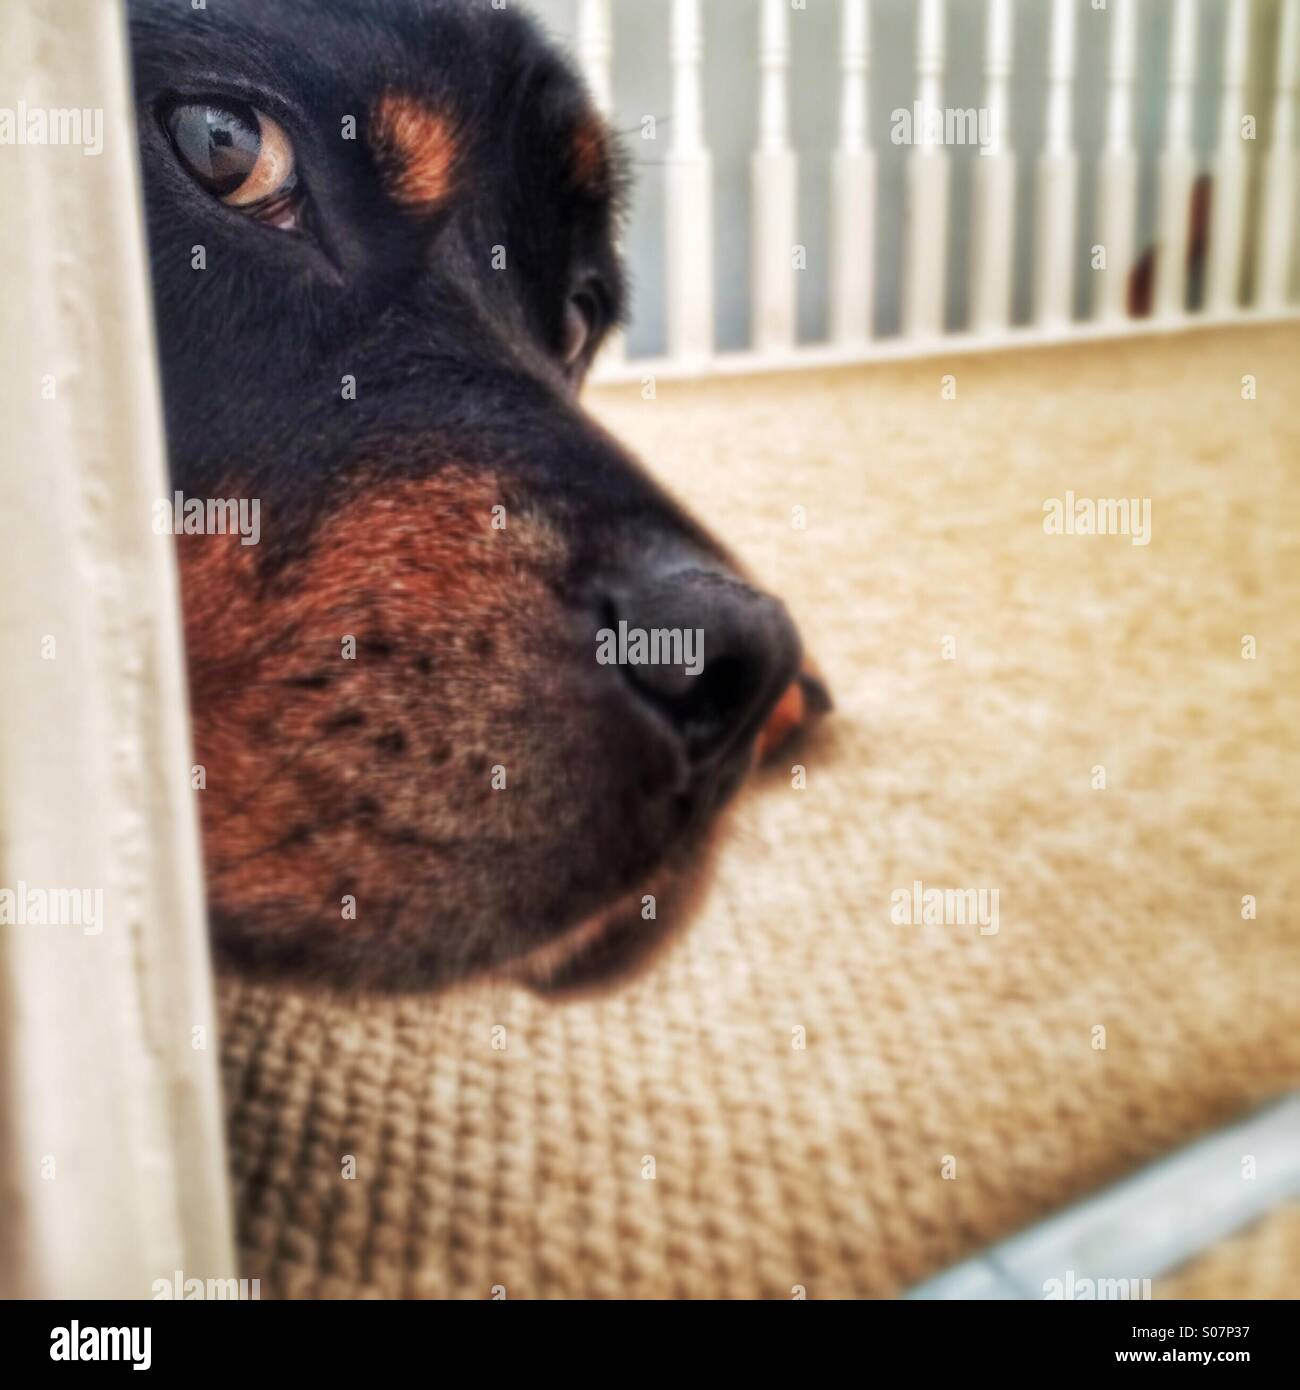 Rottweiler dog peeping - Stock Image